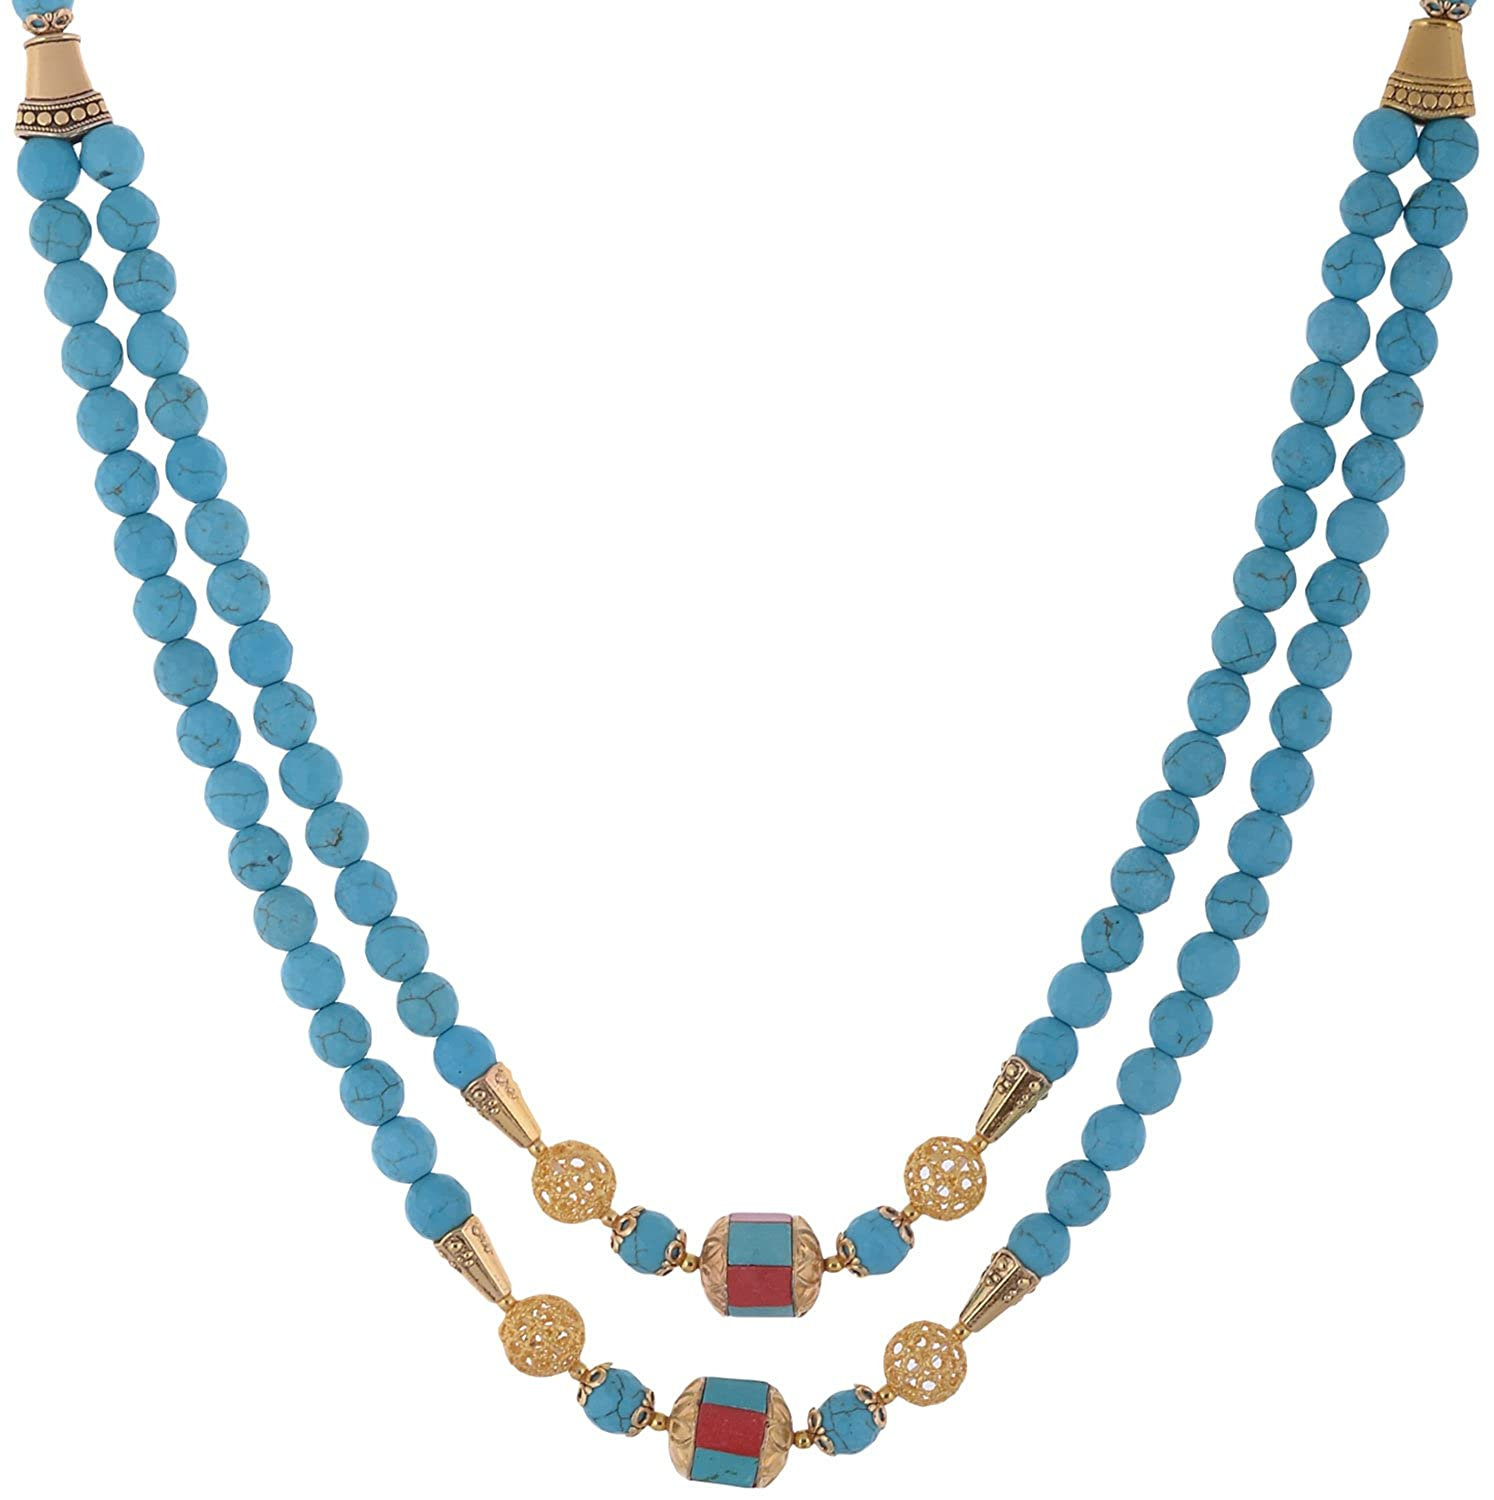 Buy Bead Designs Blue Crystal Chain for Women (BD1274) Online at ...